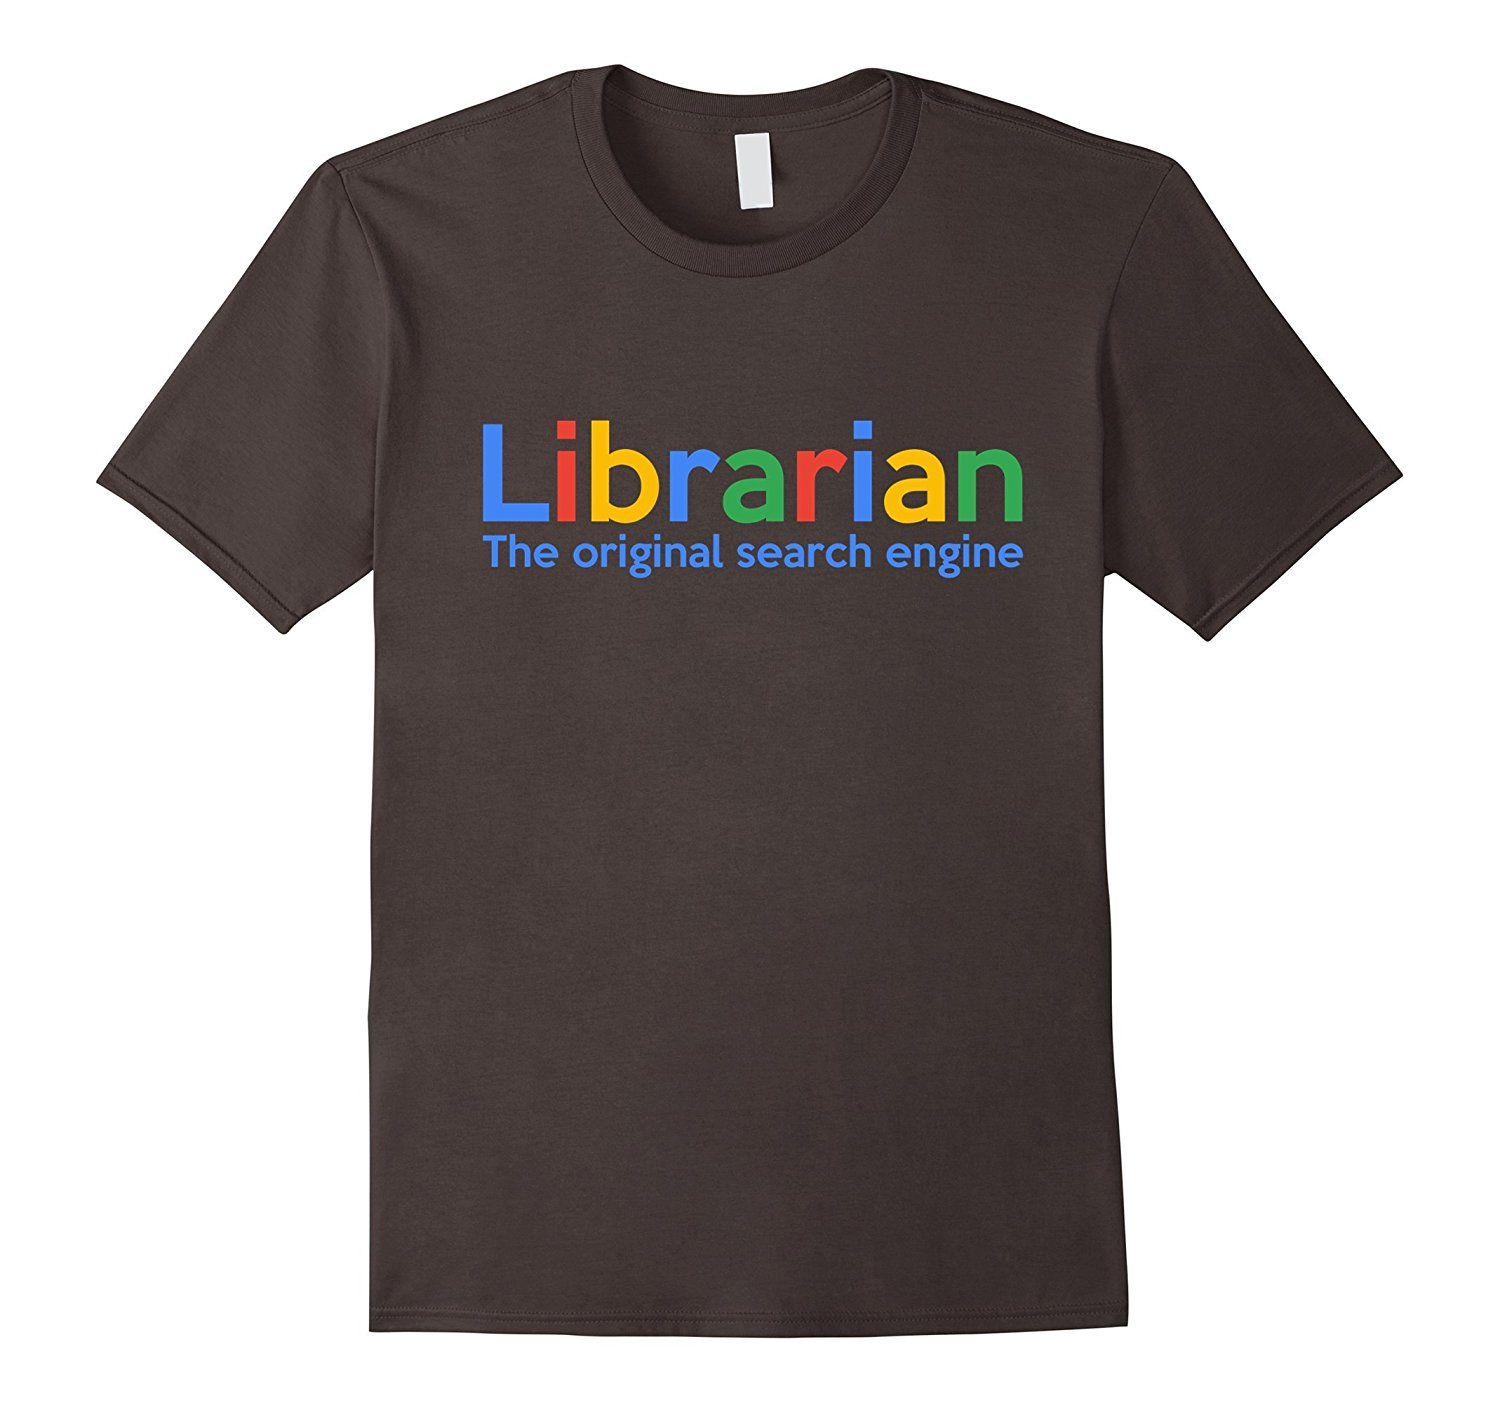 Librarian The Original Search Engine T Shirt | Funny Library O-Neck Oversize Style Tee Shirts Styles Print T-Shirt Male Brand image